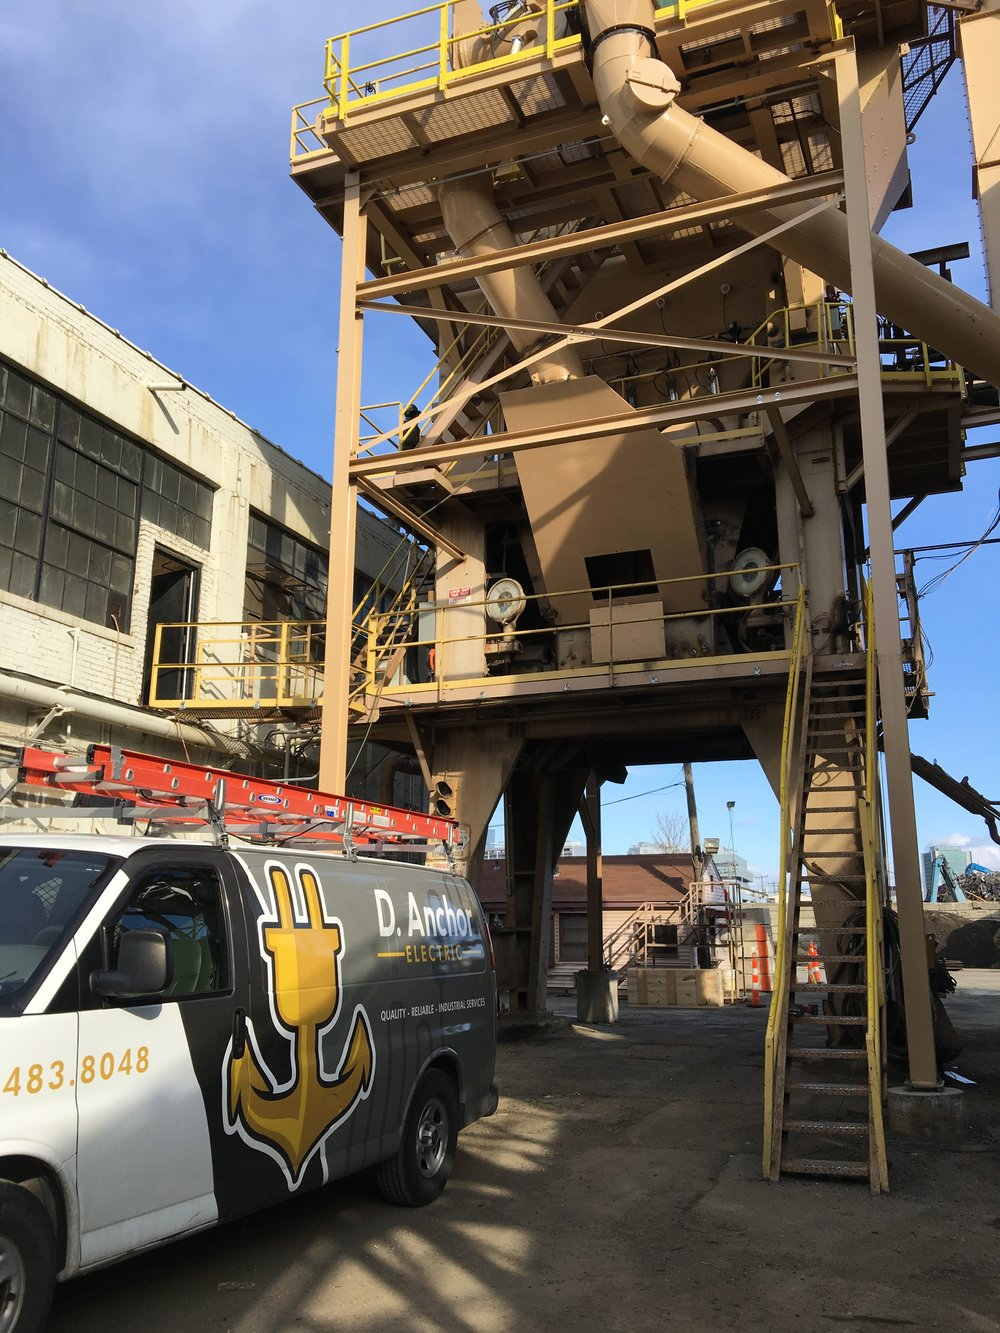 Concrete & Asphalt - We are responsible for building and installing, troubleshooting, repairing and maintaining 3 Phase Electrical Services and Motor Control Centers. VFD s and Soft Starters, Manual, Automated and PLC Control Systems associated with concrete and asphalt plants.